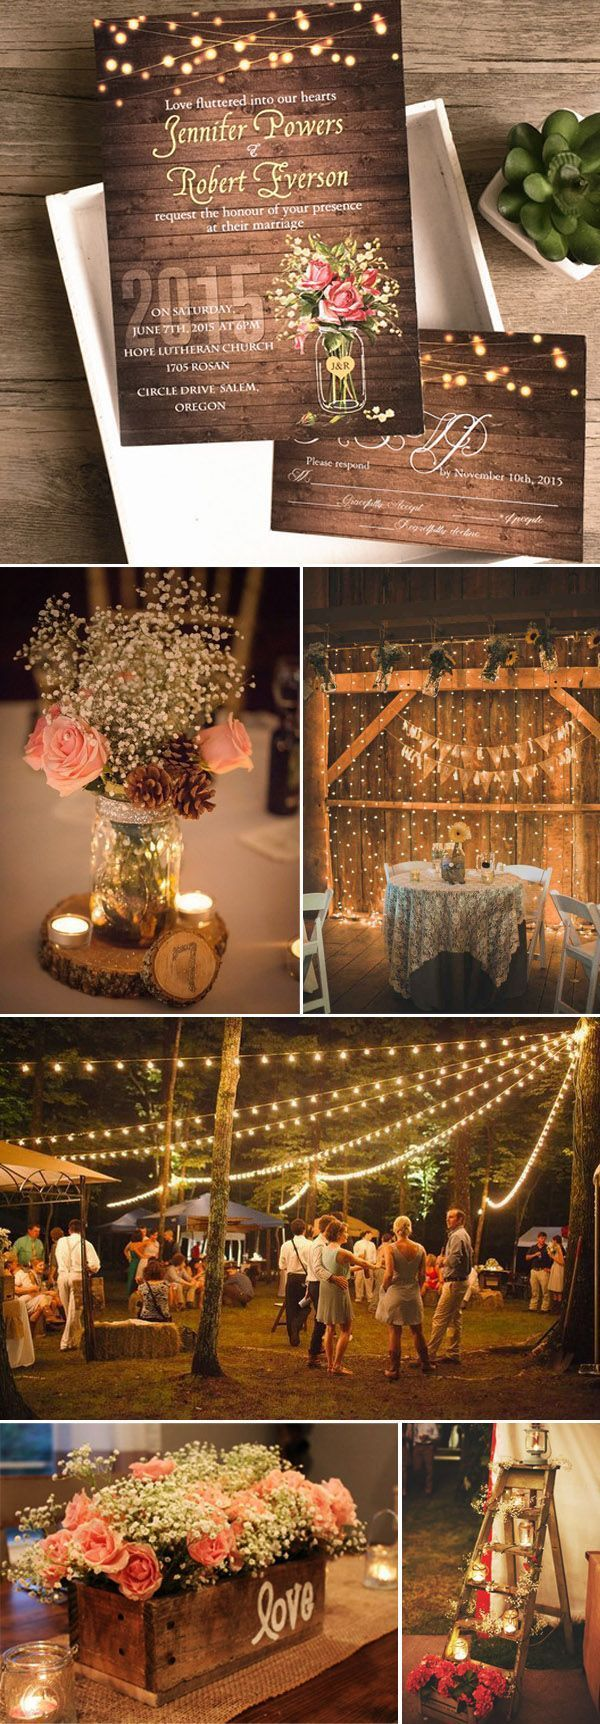 309 best rustic glam wedding inspiration images on pinterest country rustic wedding invitations for spring 2016 inspired by mason jars and string lights junglespirit Images